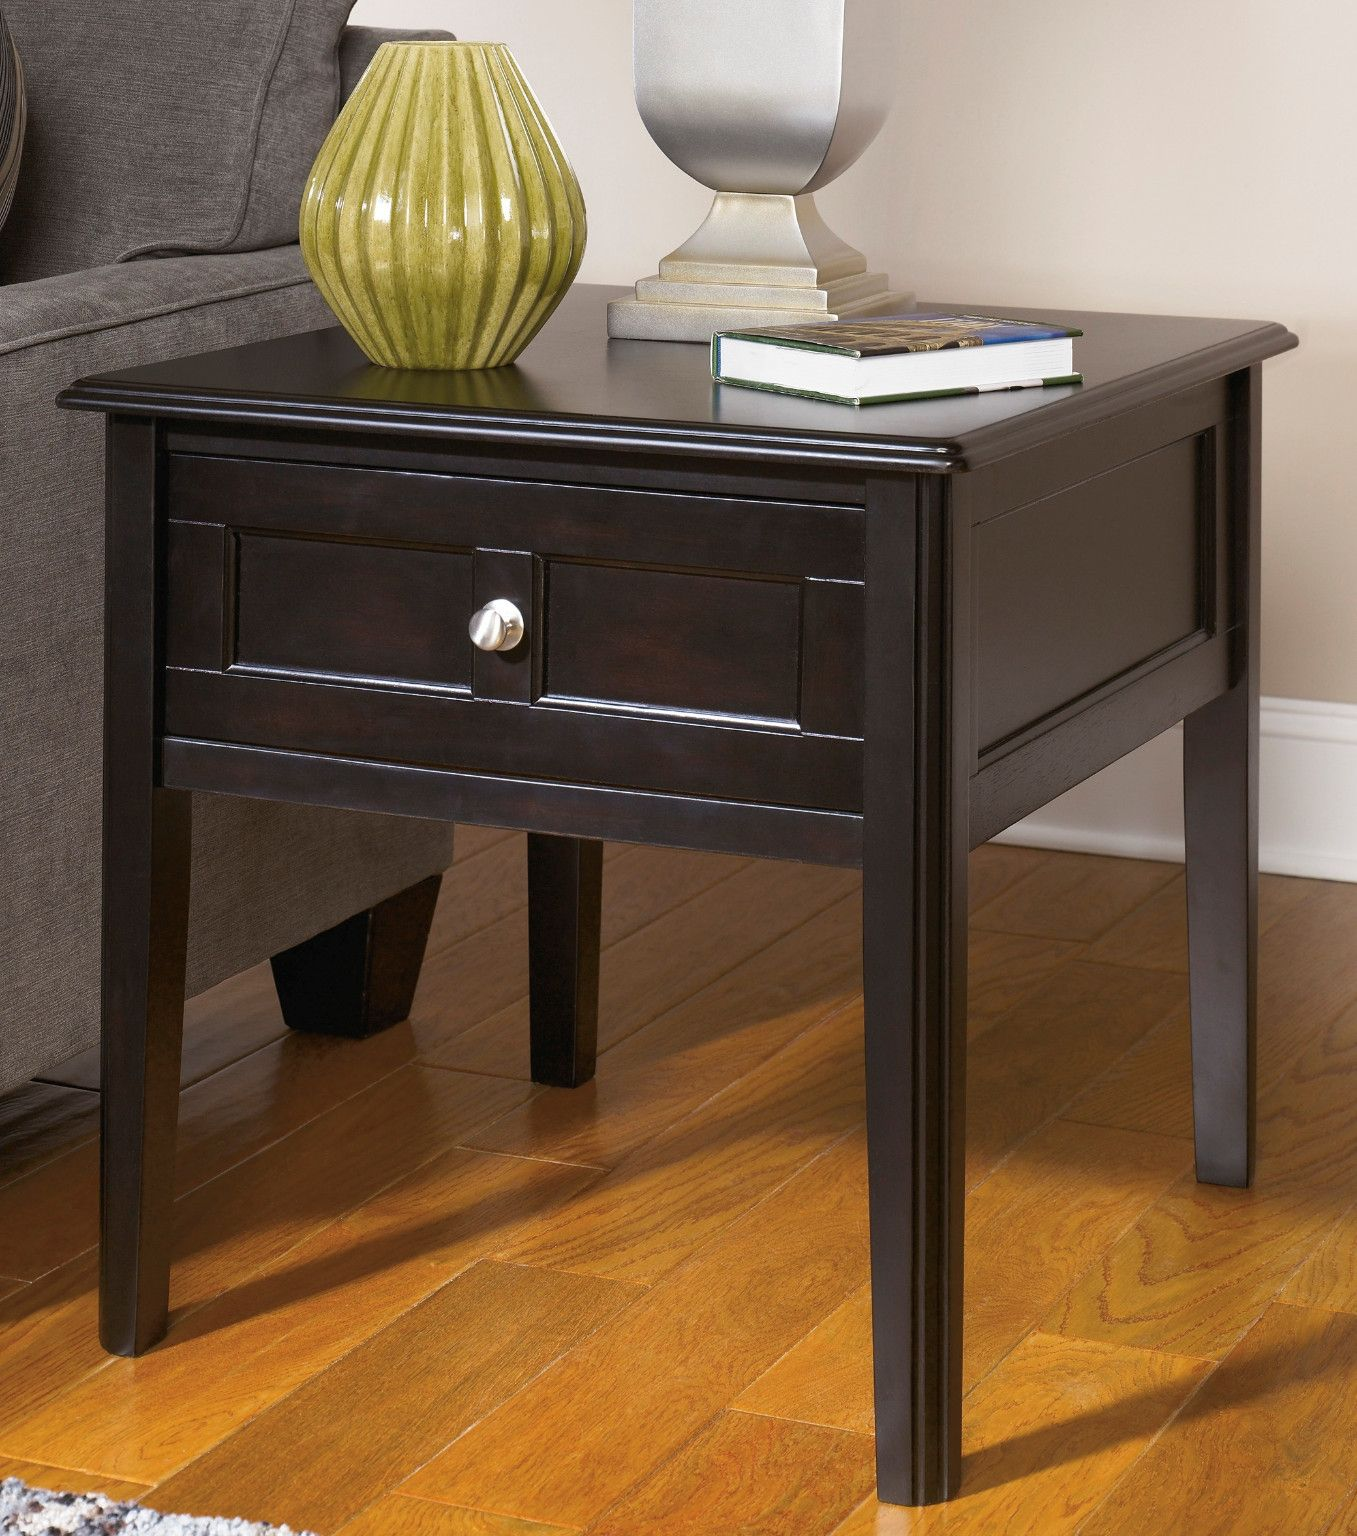 Clearance Hobby Lobby Furniture End Tables on Hobby Lobby Furniture Clearance id=11526